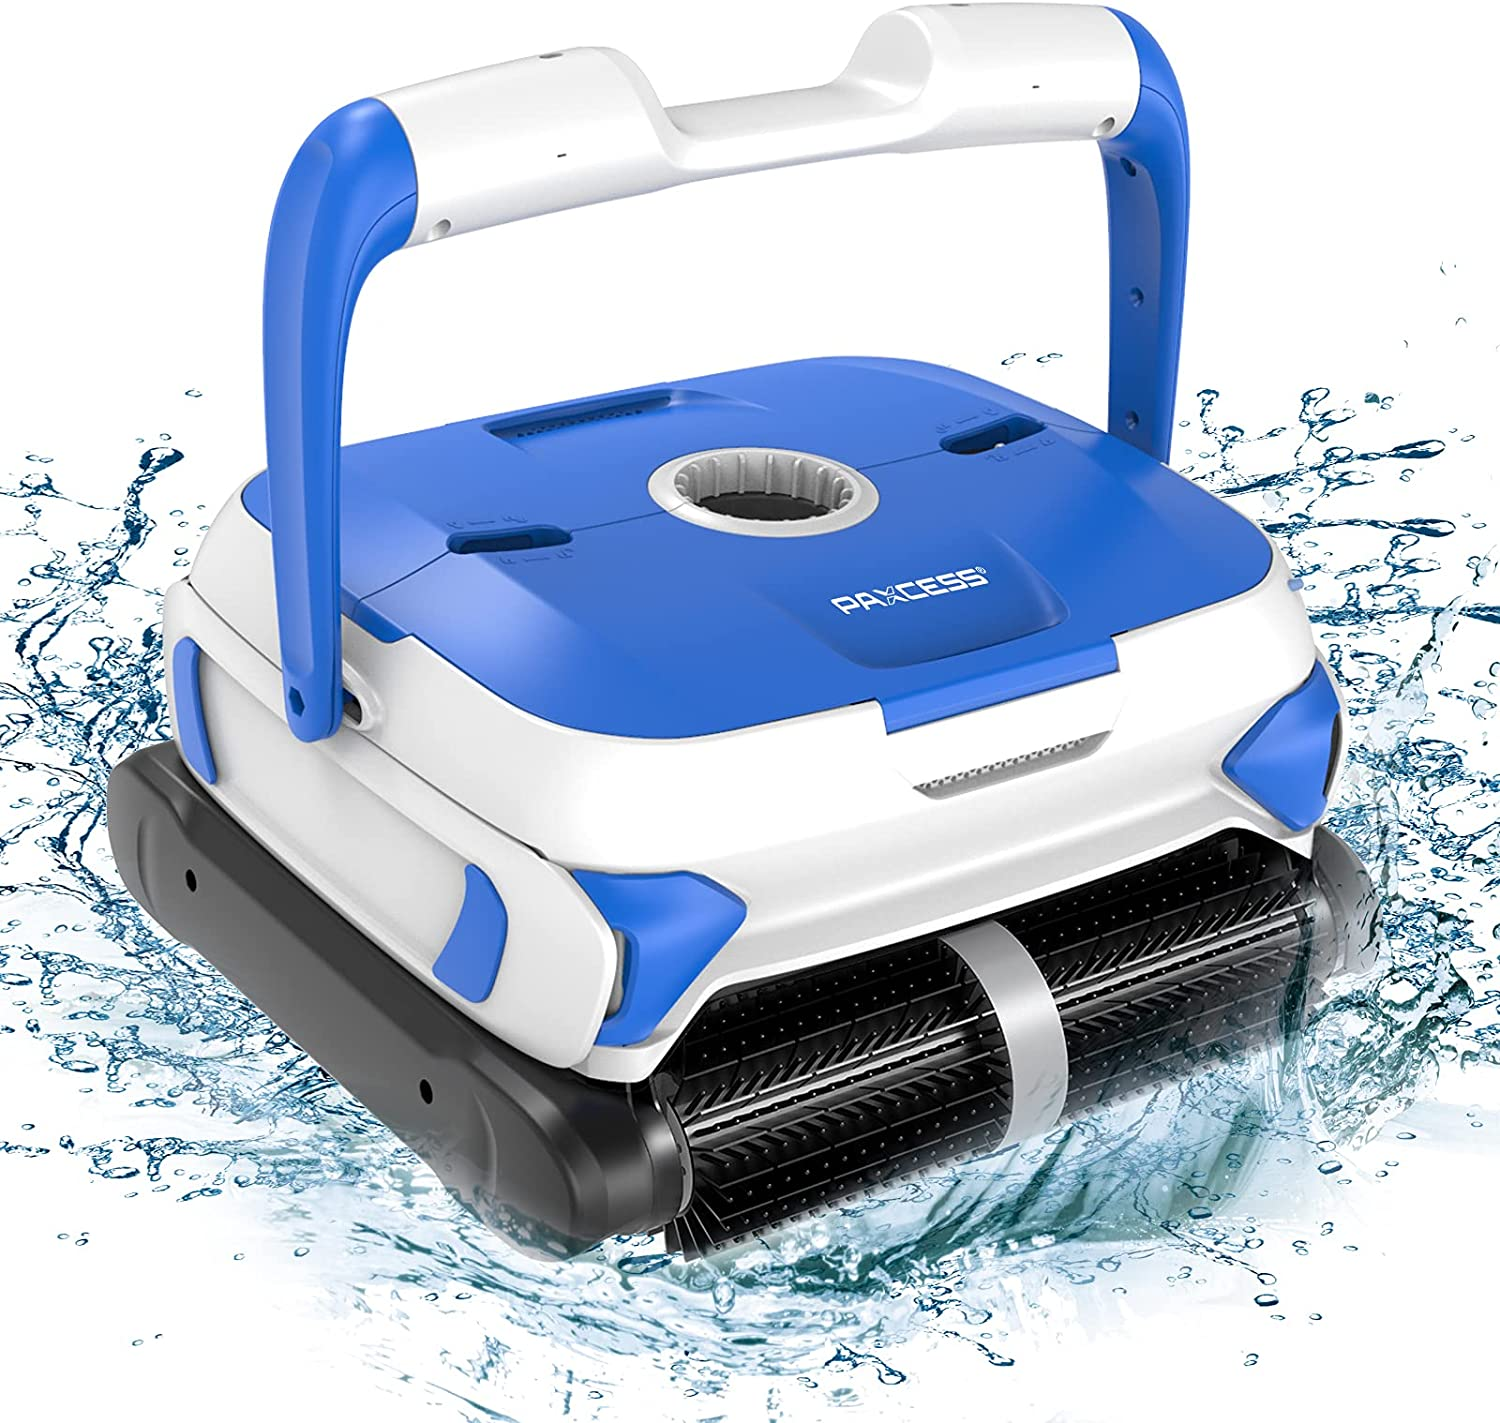 PAXCESS Wall-Climbing Tucson Mall Automatic Pool Cleaner Twin Lowest price challenge with Large 180